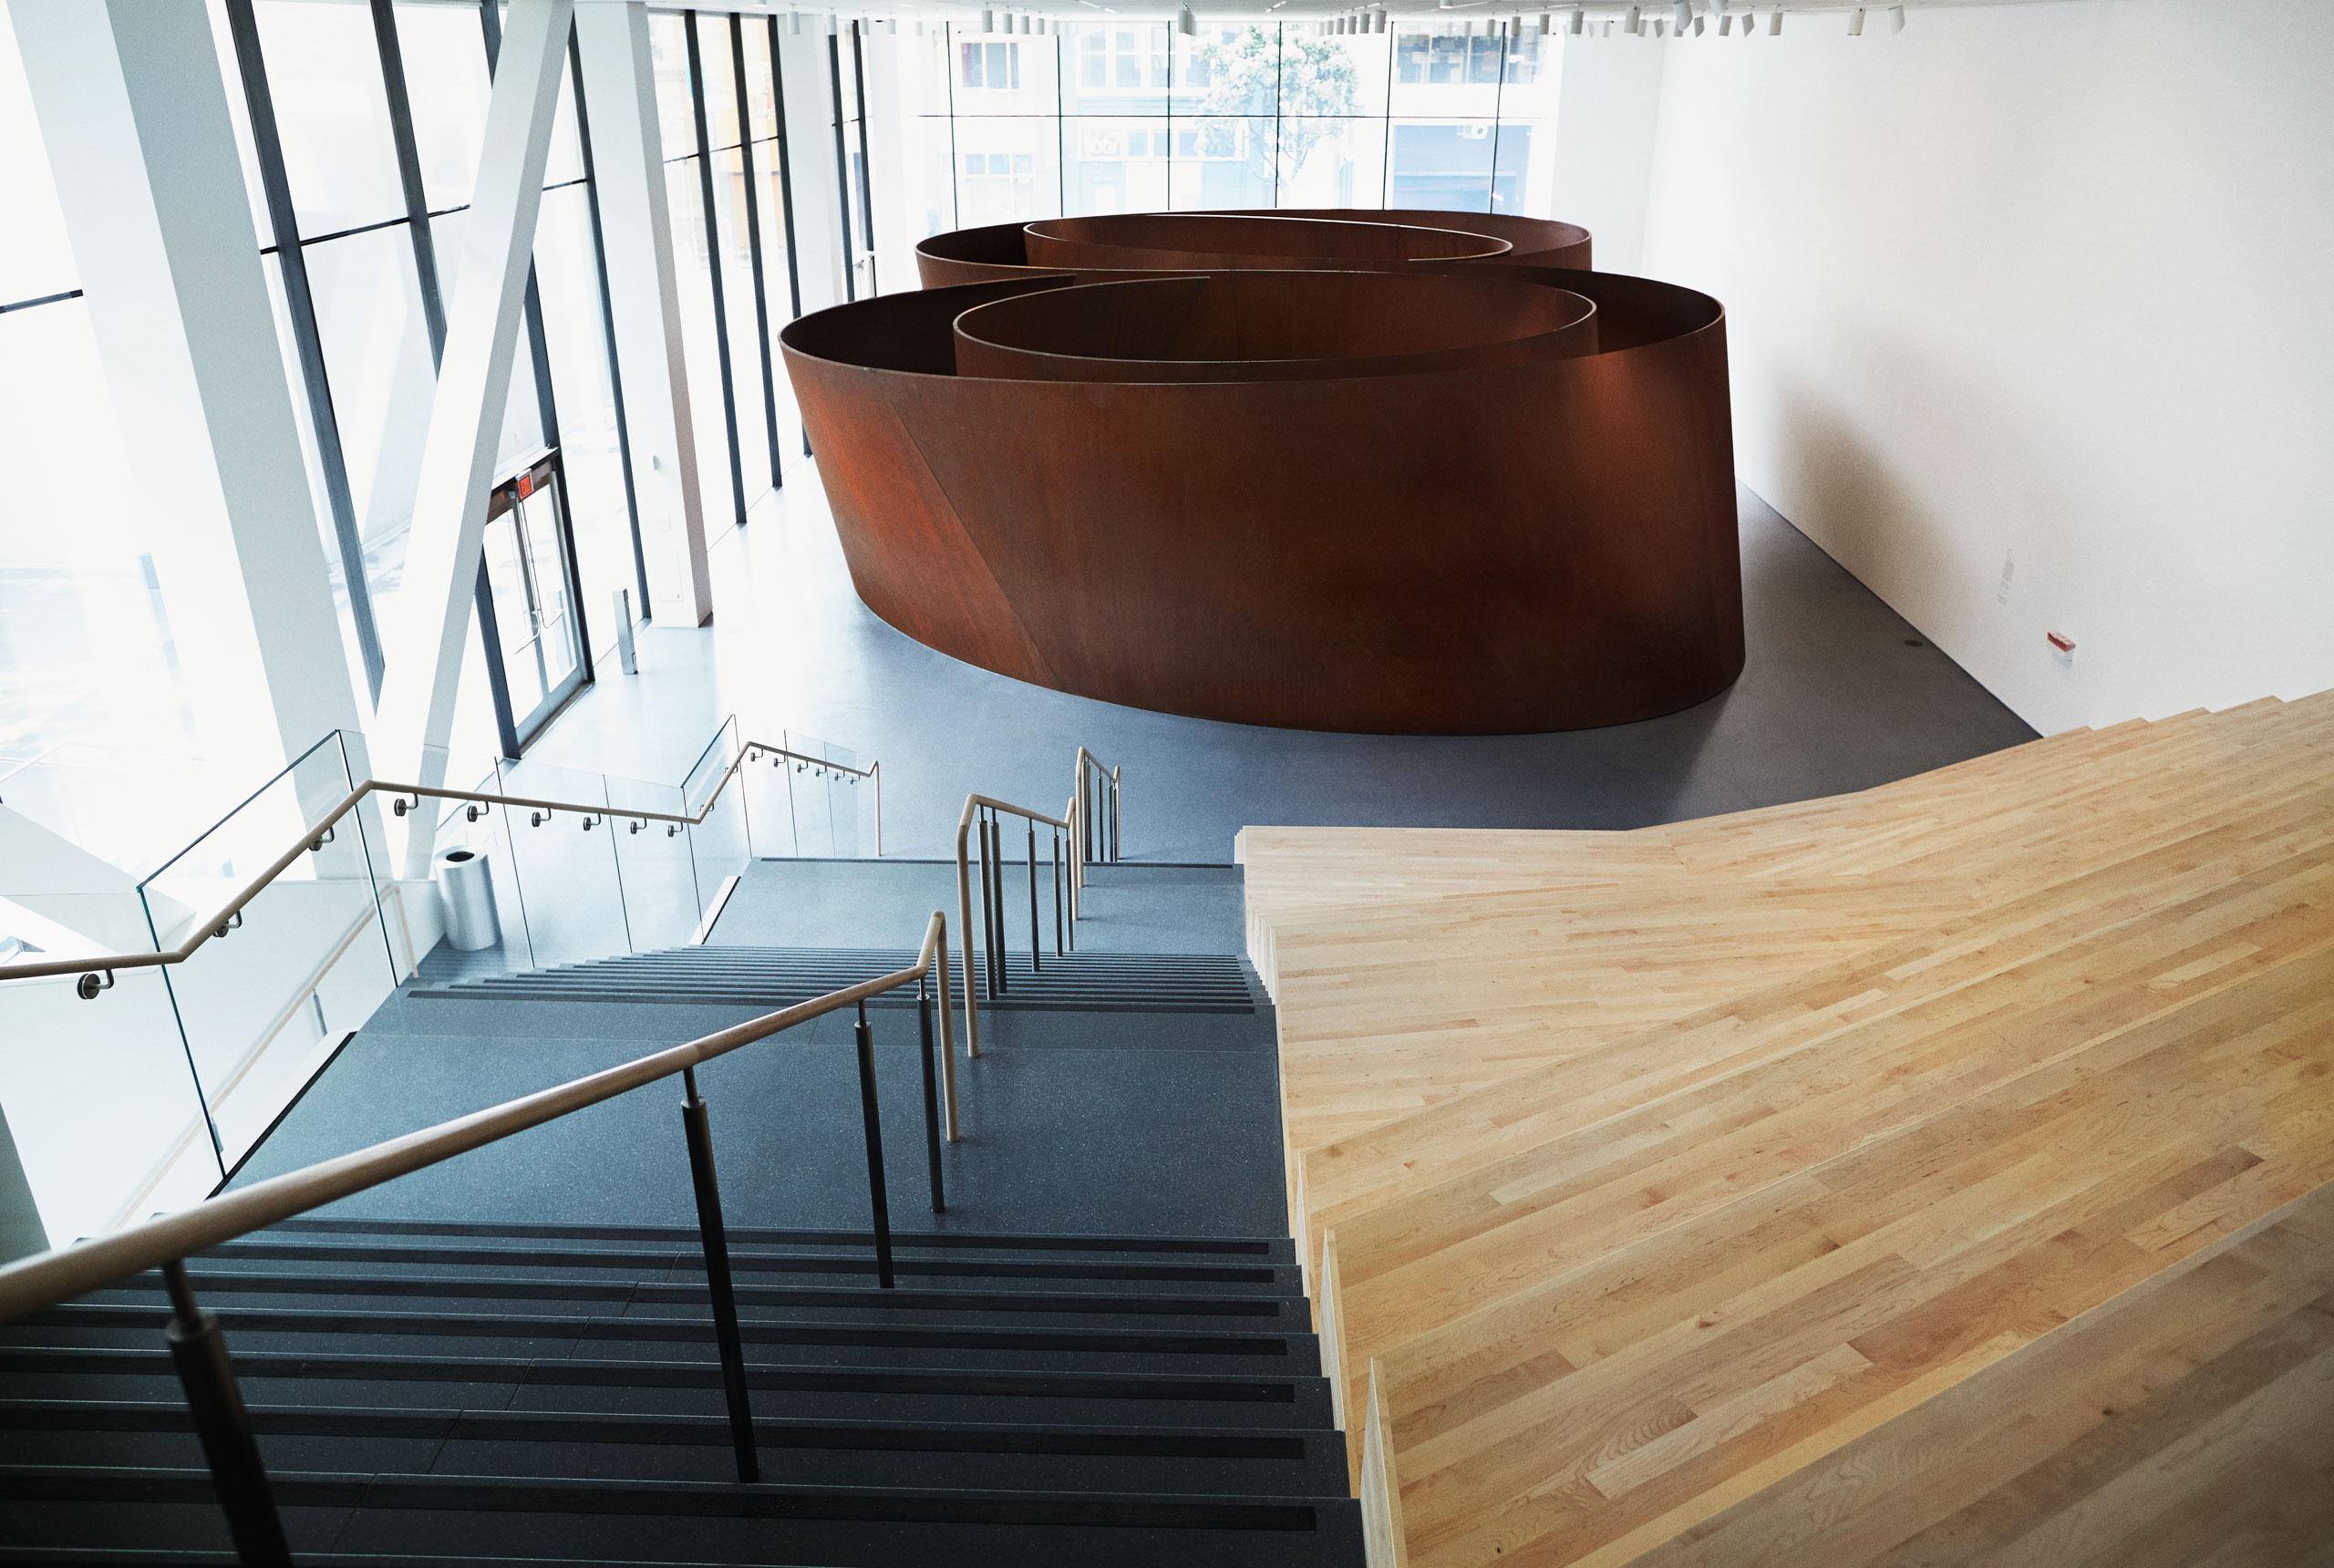 The Snøhetta addition gives Richard Serra's Sequence, 2006, a room to itself